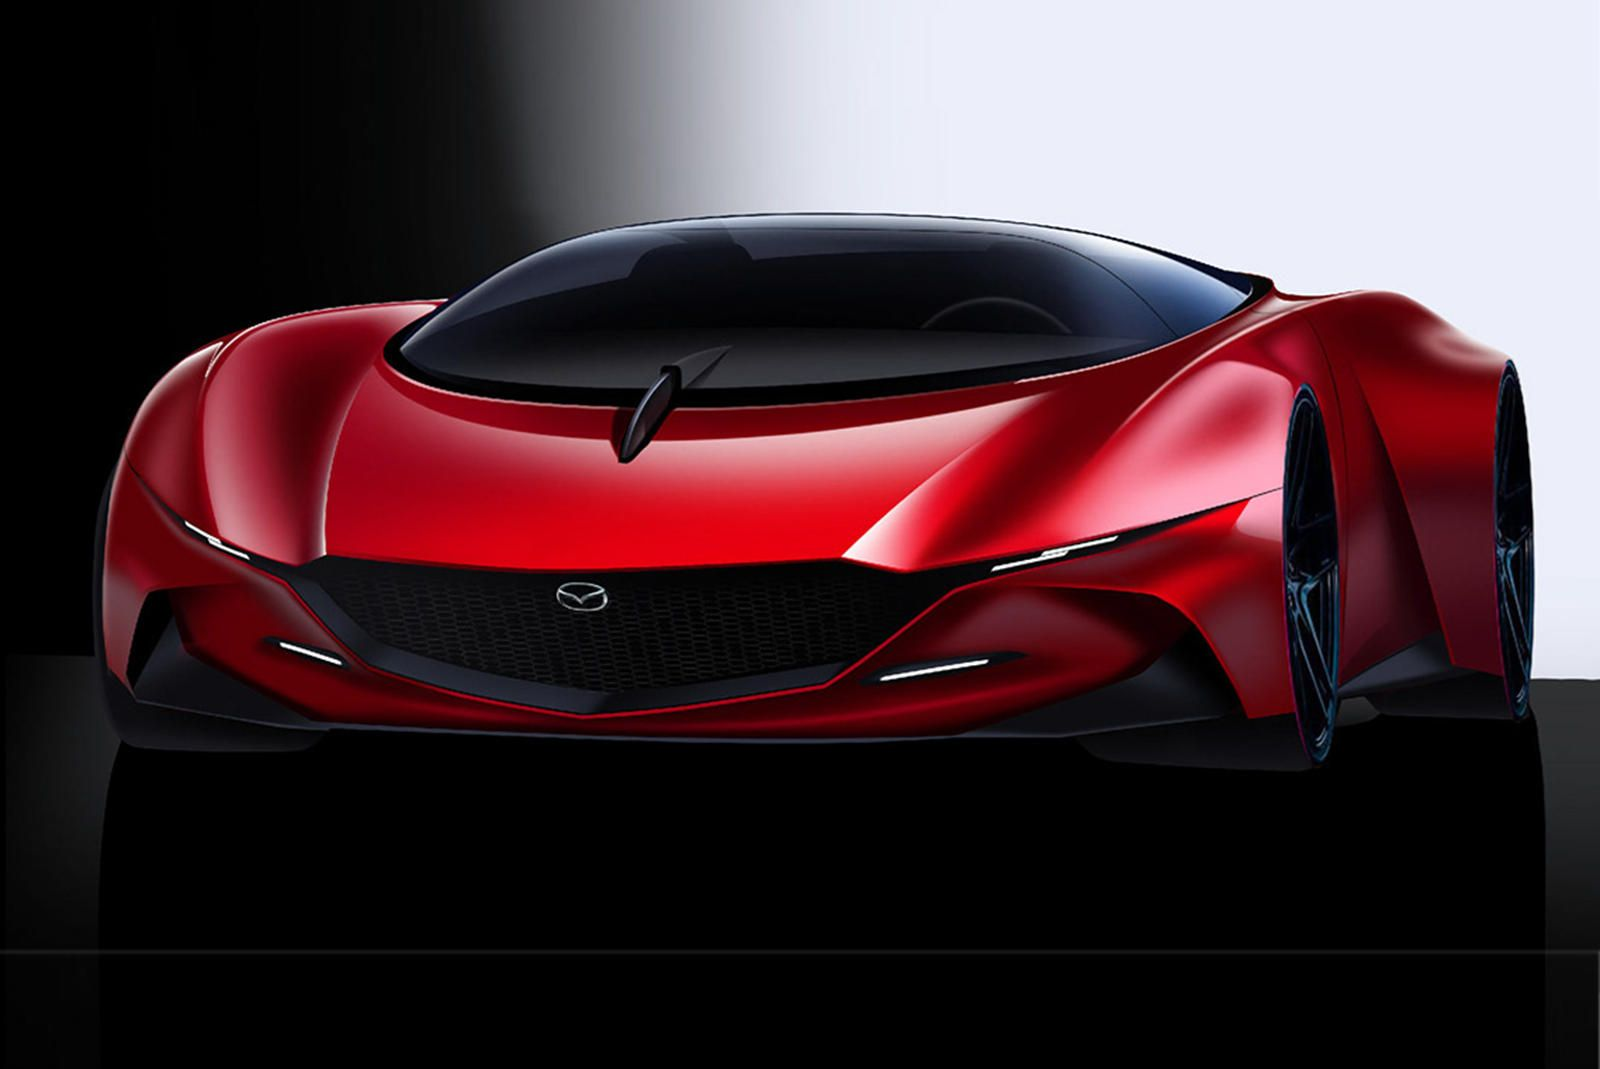 Stunning Mazda 9 Is The Mid Engine Supercar Mazda Needs To Make What If Mazda Made A Mid Engine Ferrari Fighter Super Cars Mazda Honda Cars